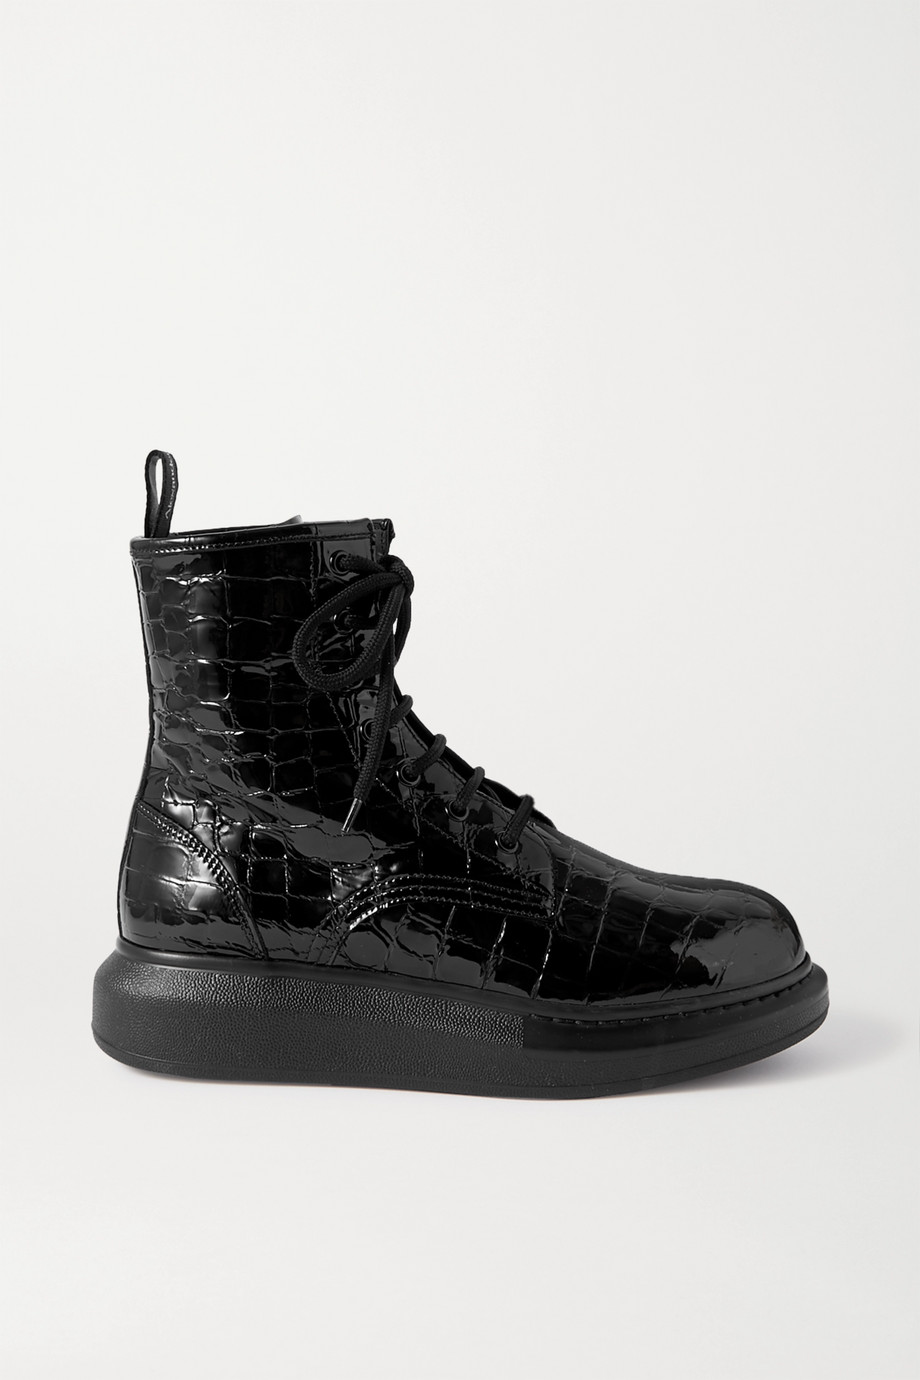 Alexander McQueen Croc-effect patent-leather exaggerated-sole ankle boots